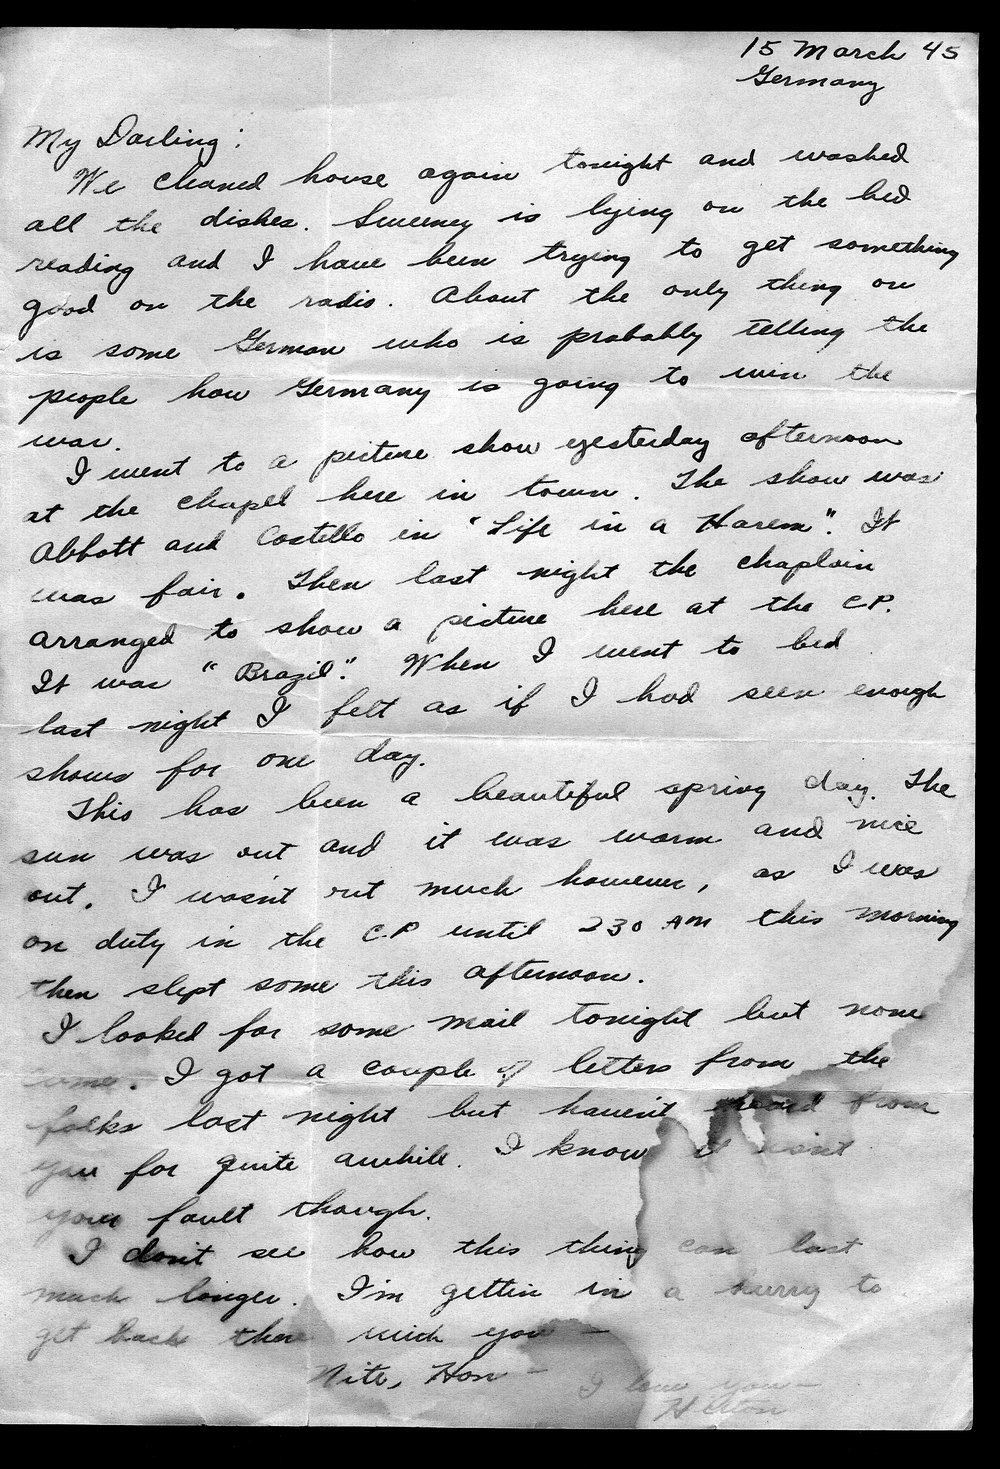 Letters from Hilton Parris Mize to his wife Irene Rosenberger Mize - 1